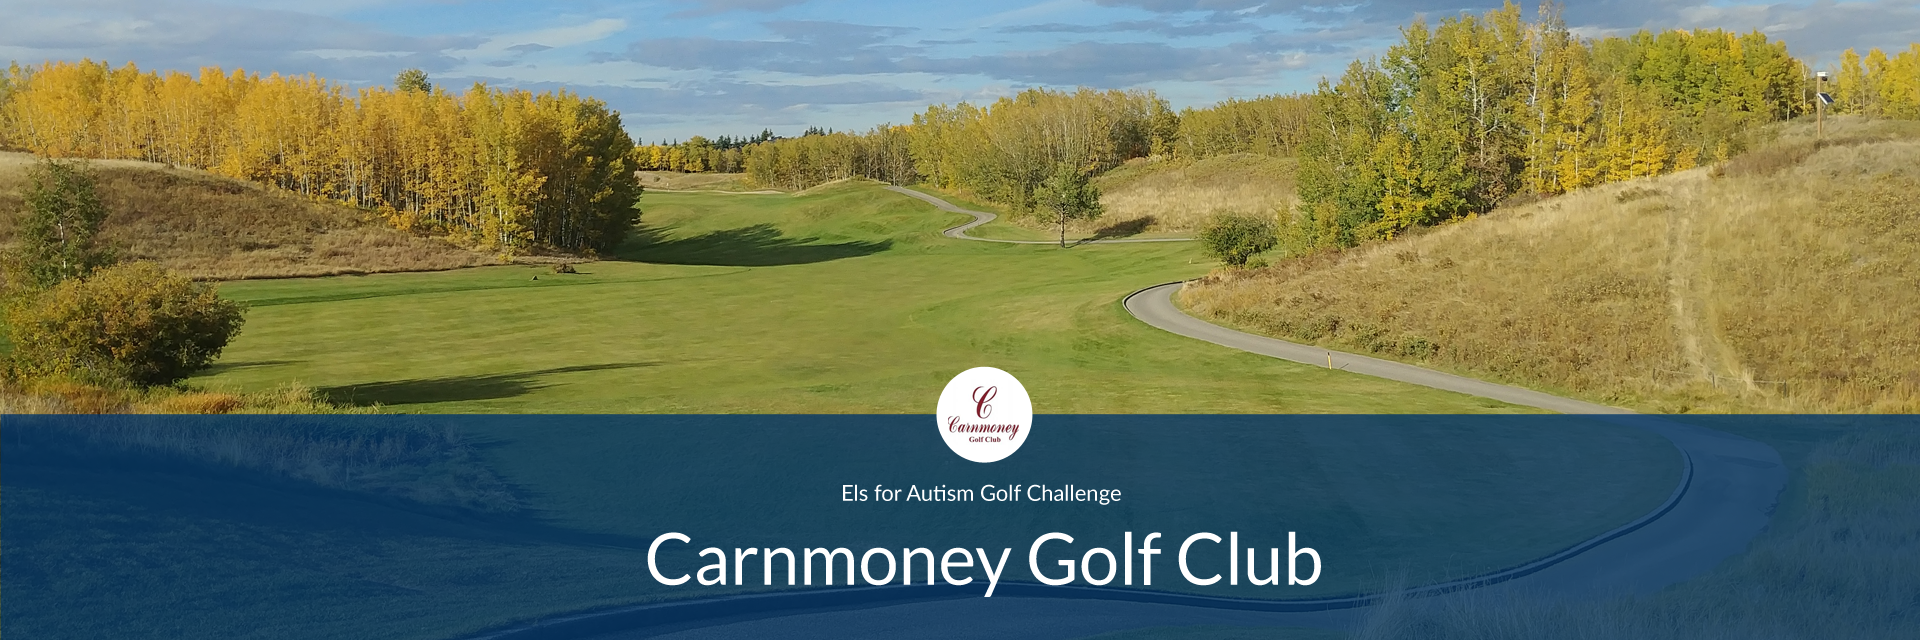 E4A Golf Challenge at Carnmoney